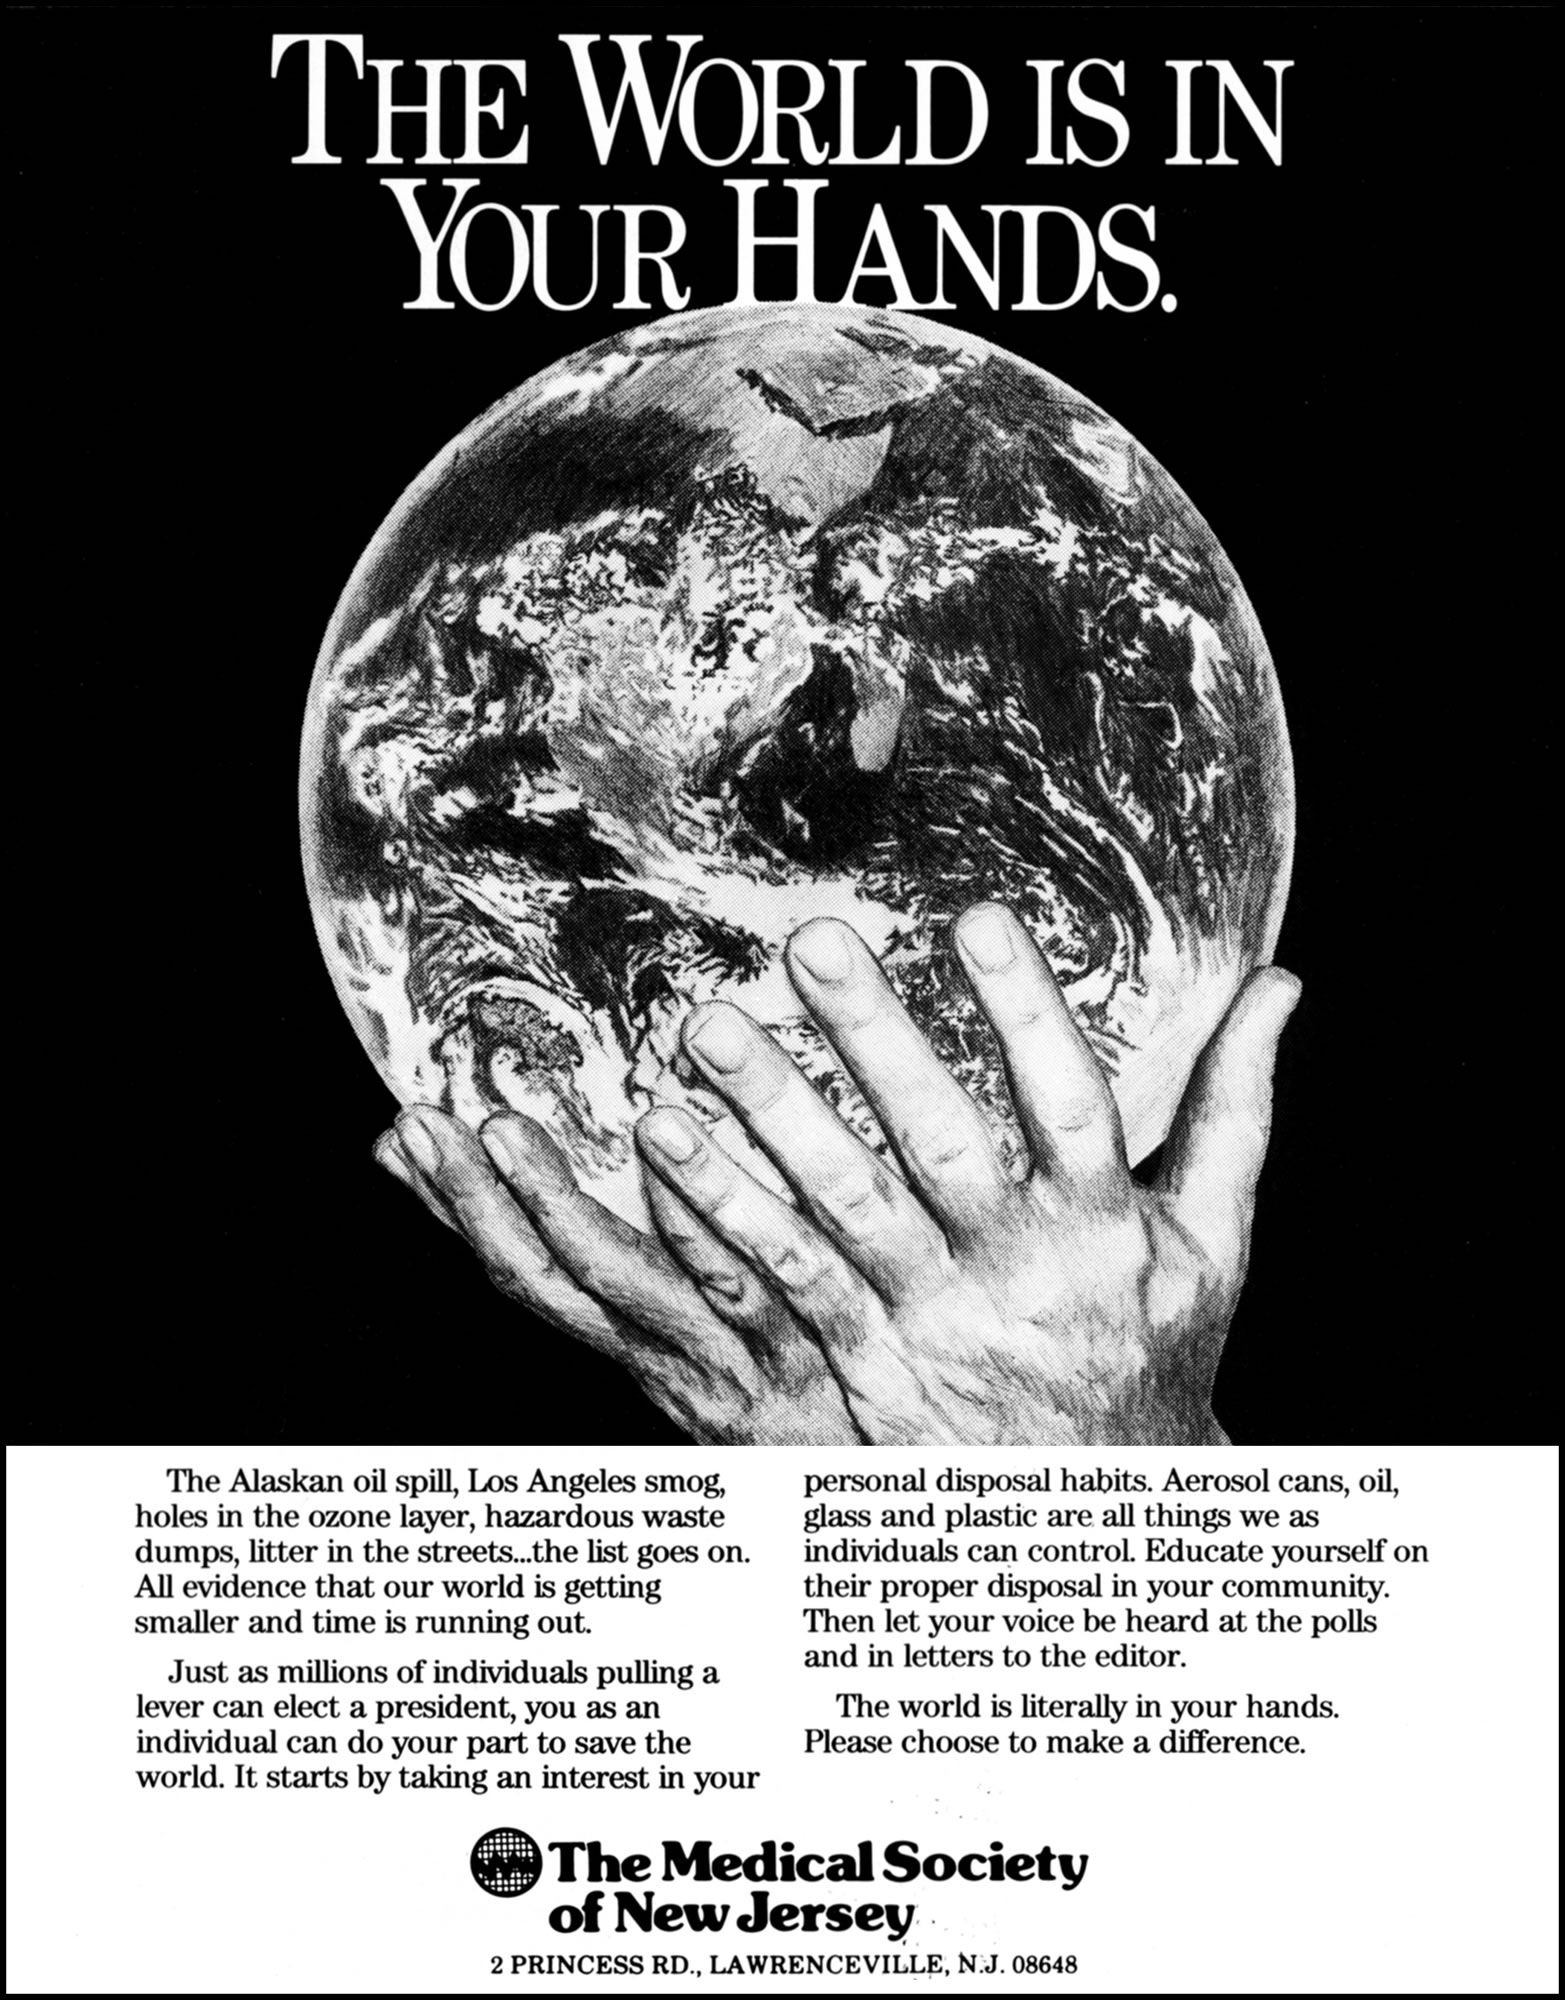 Medical Society of New Jersey - World In Hands (Illustration)